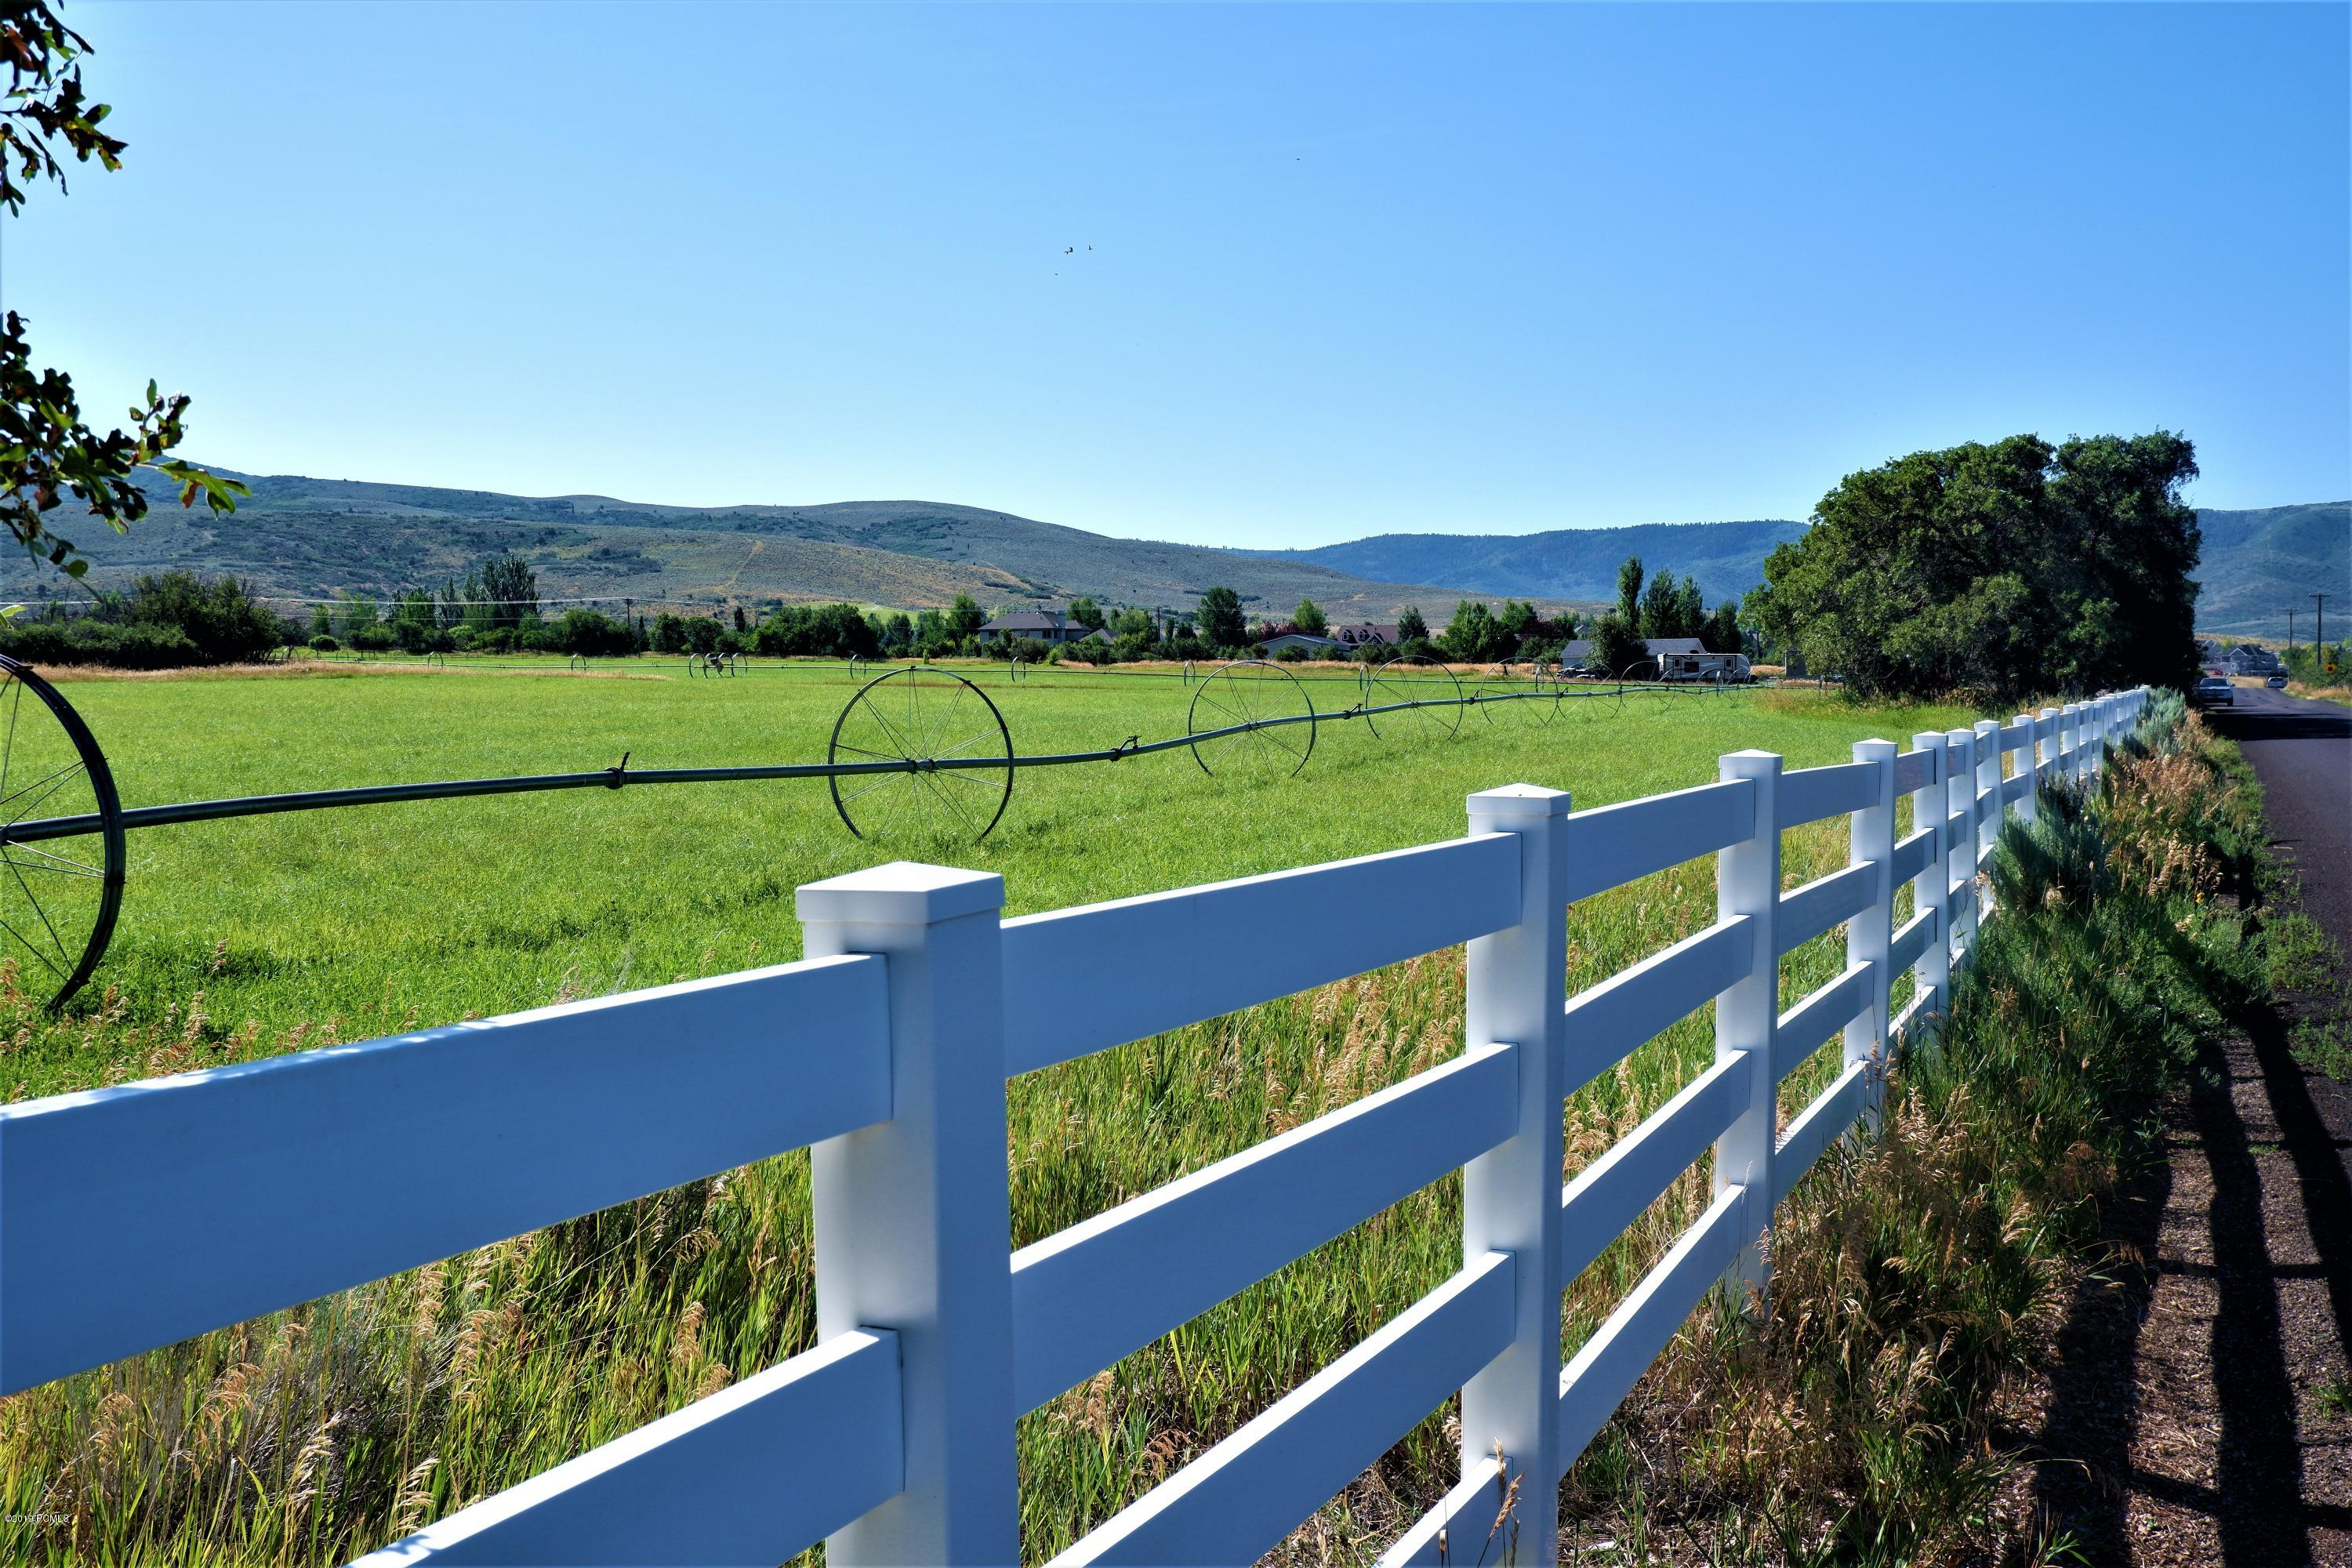 971 4800 E, Heber City, Utah 84032, ,Land,For Sale,4800 E,11907448